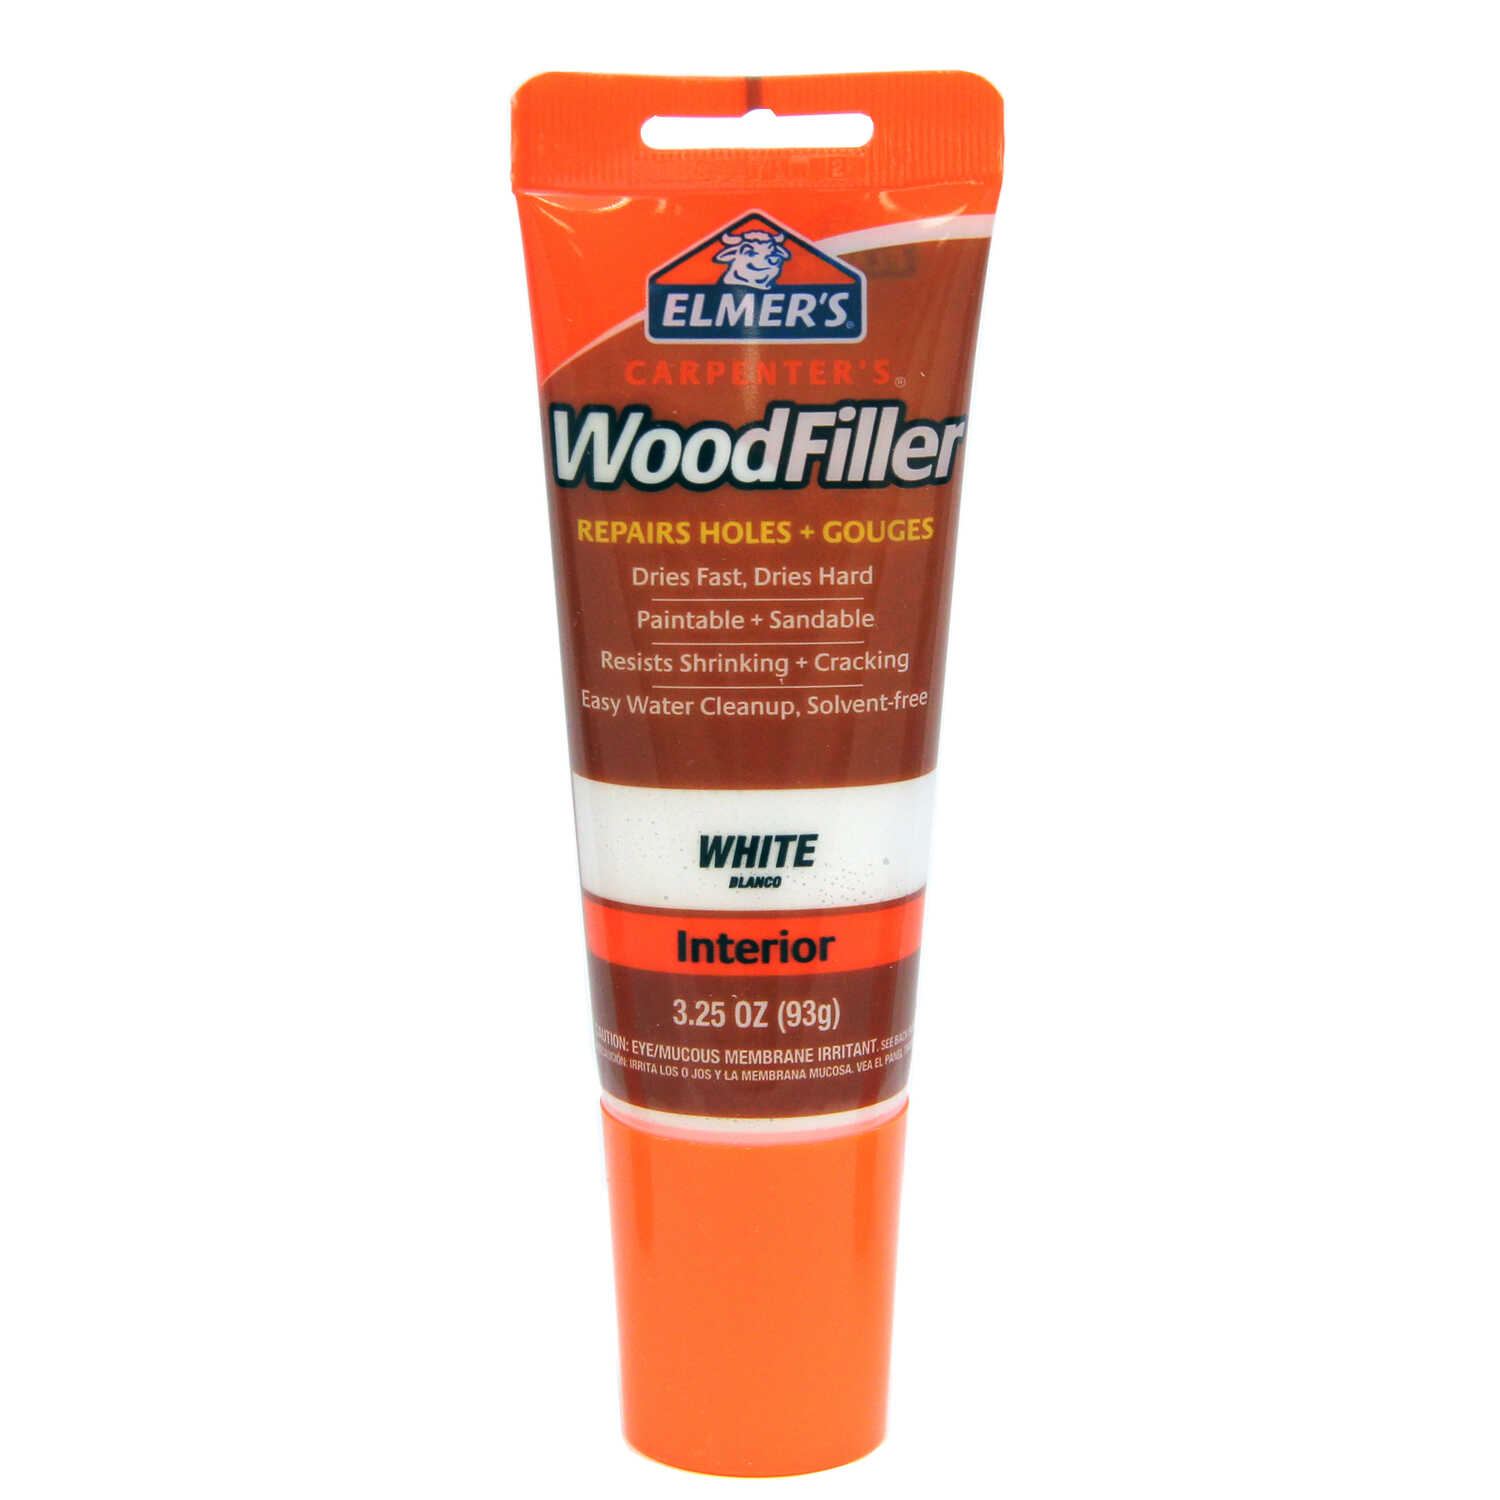 Elmer's  Carpenter's  White  Wood Filler  3.25 oz.